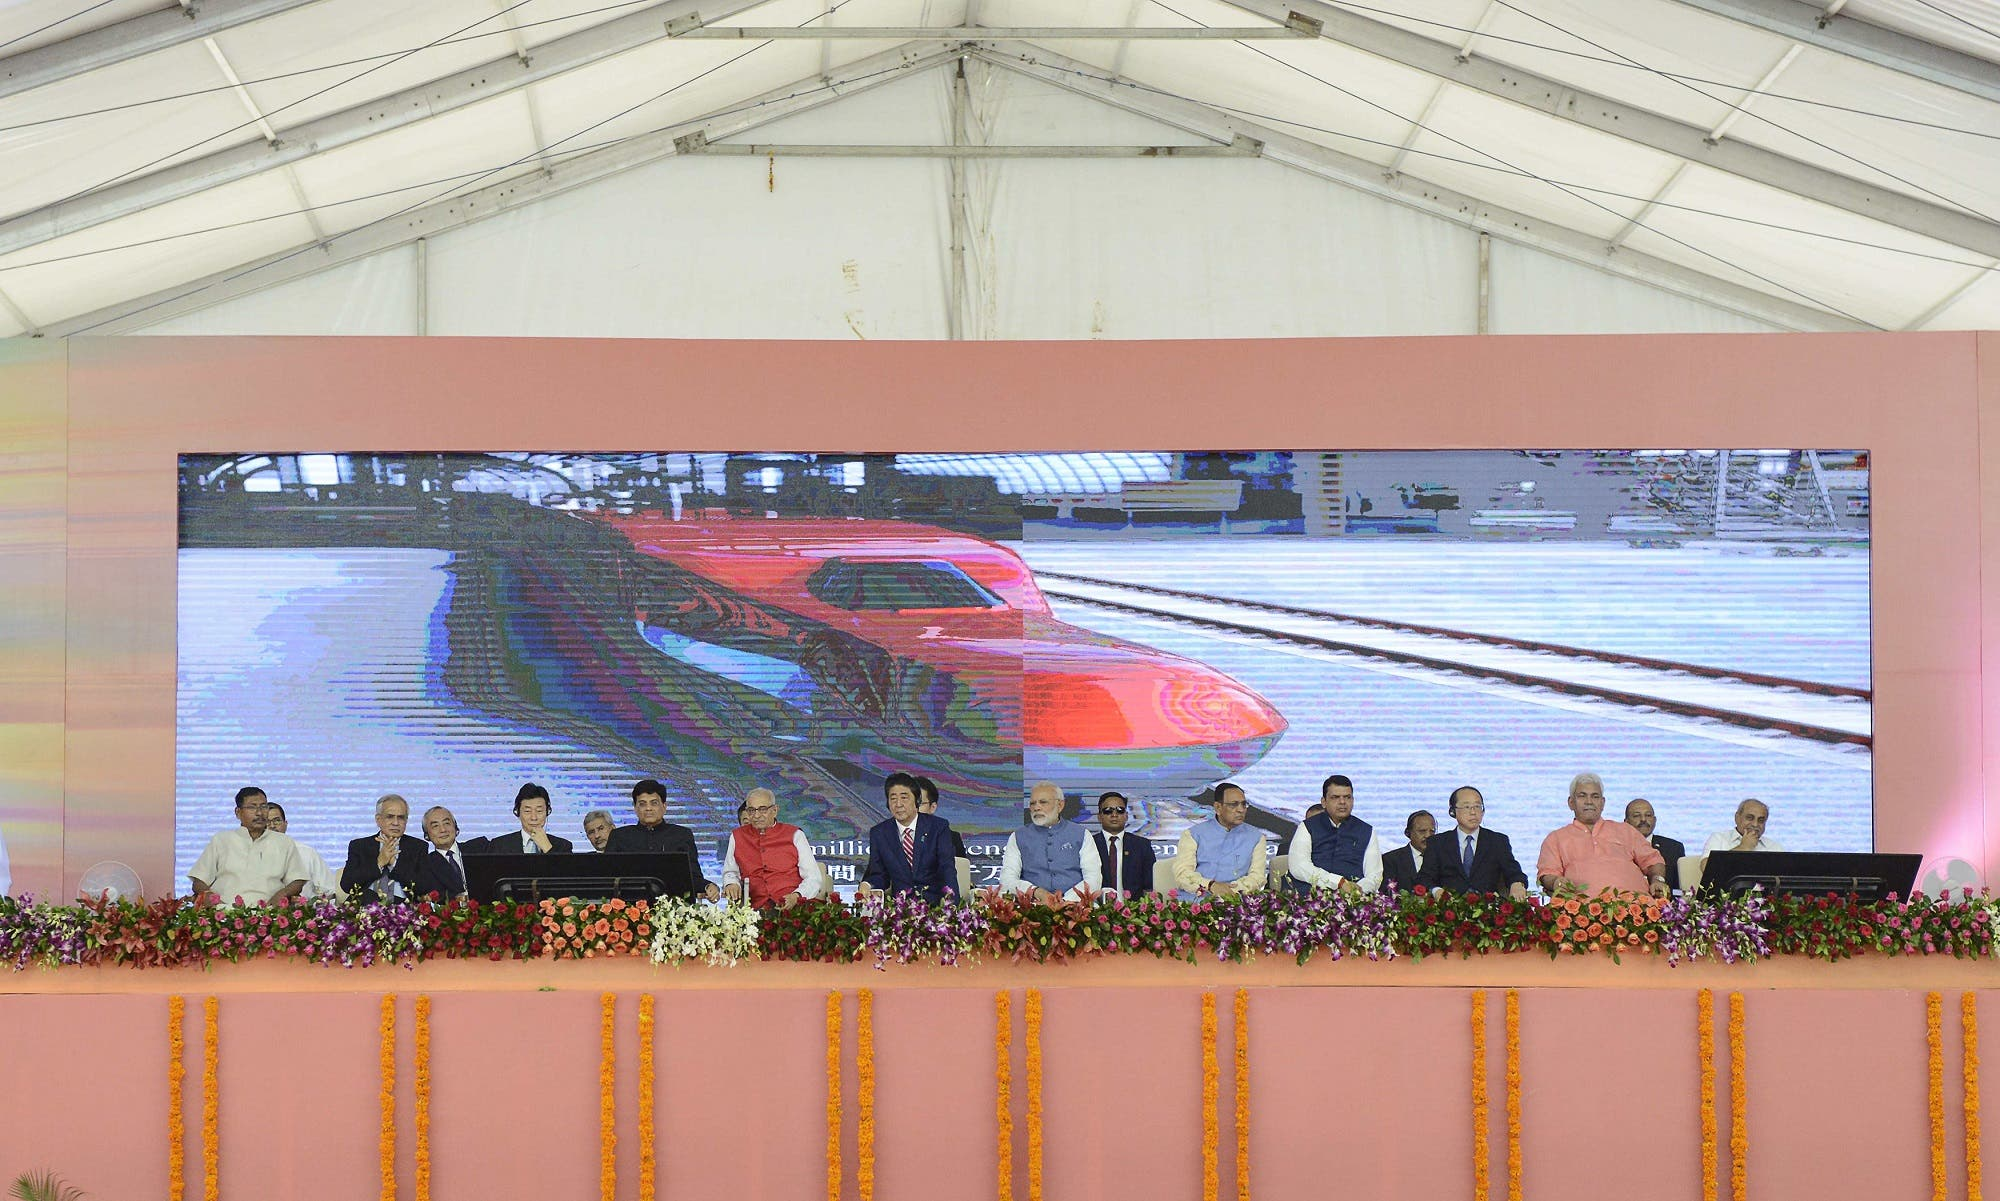 Prime Minister Narendra Modi (7L) and Japanese Prime Minister Shinzo Abe (6L) during ground breaking ceremony for the high speed rail project in Ahmedabad on September 14, 2017. (AFP)